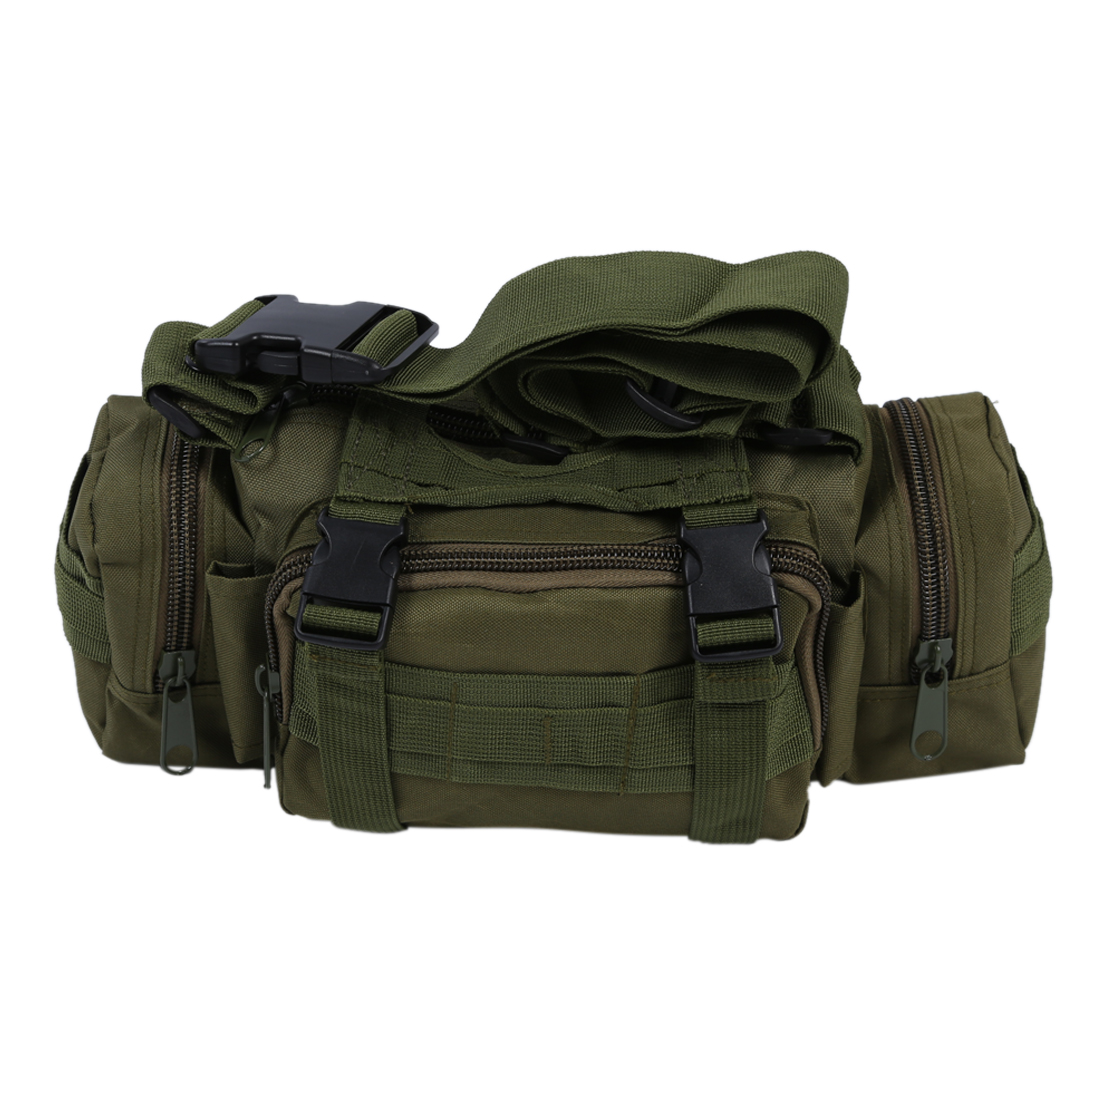 New Utility  Waist Pack Pouch Military Bag - Green